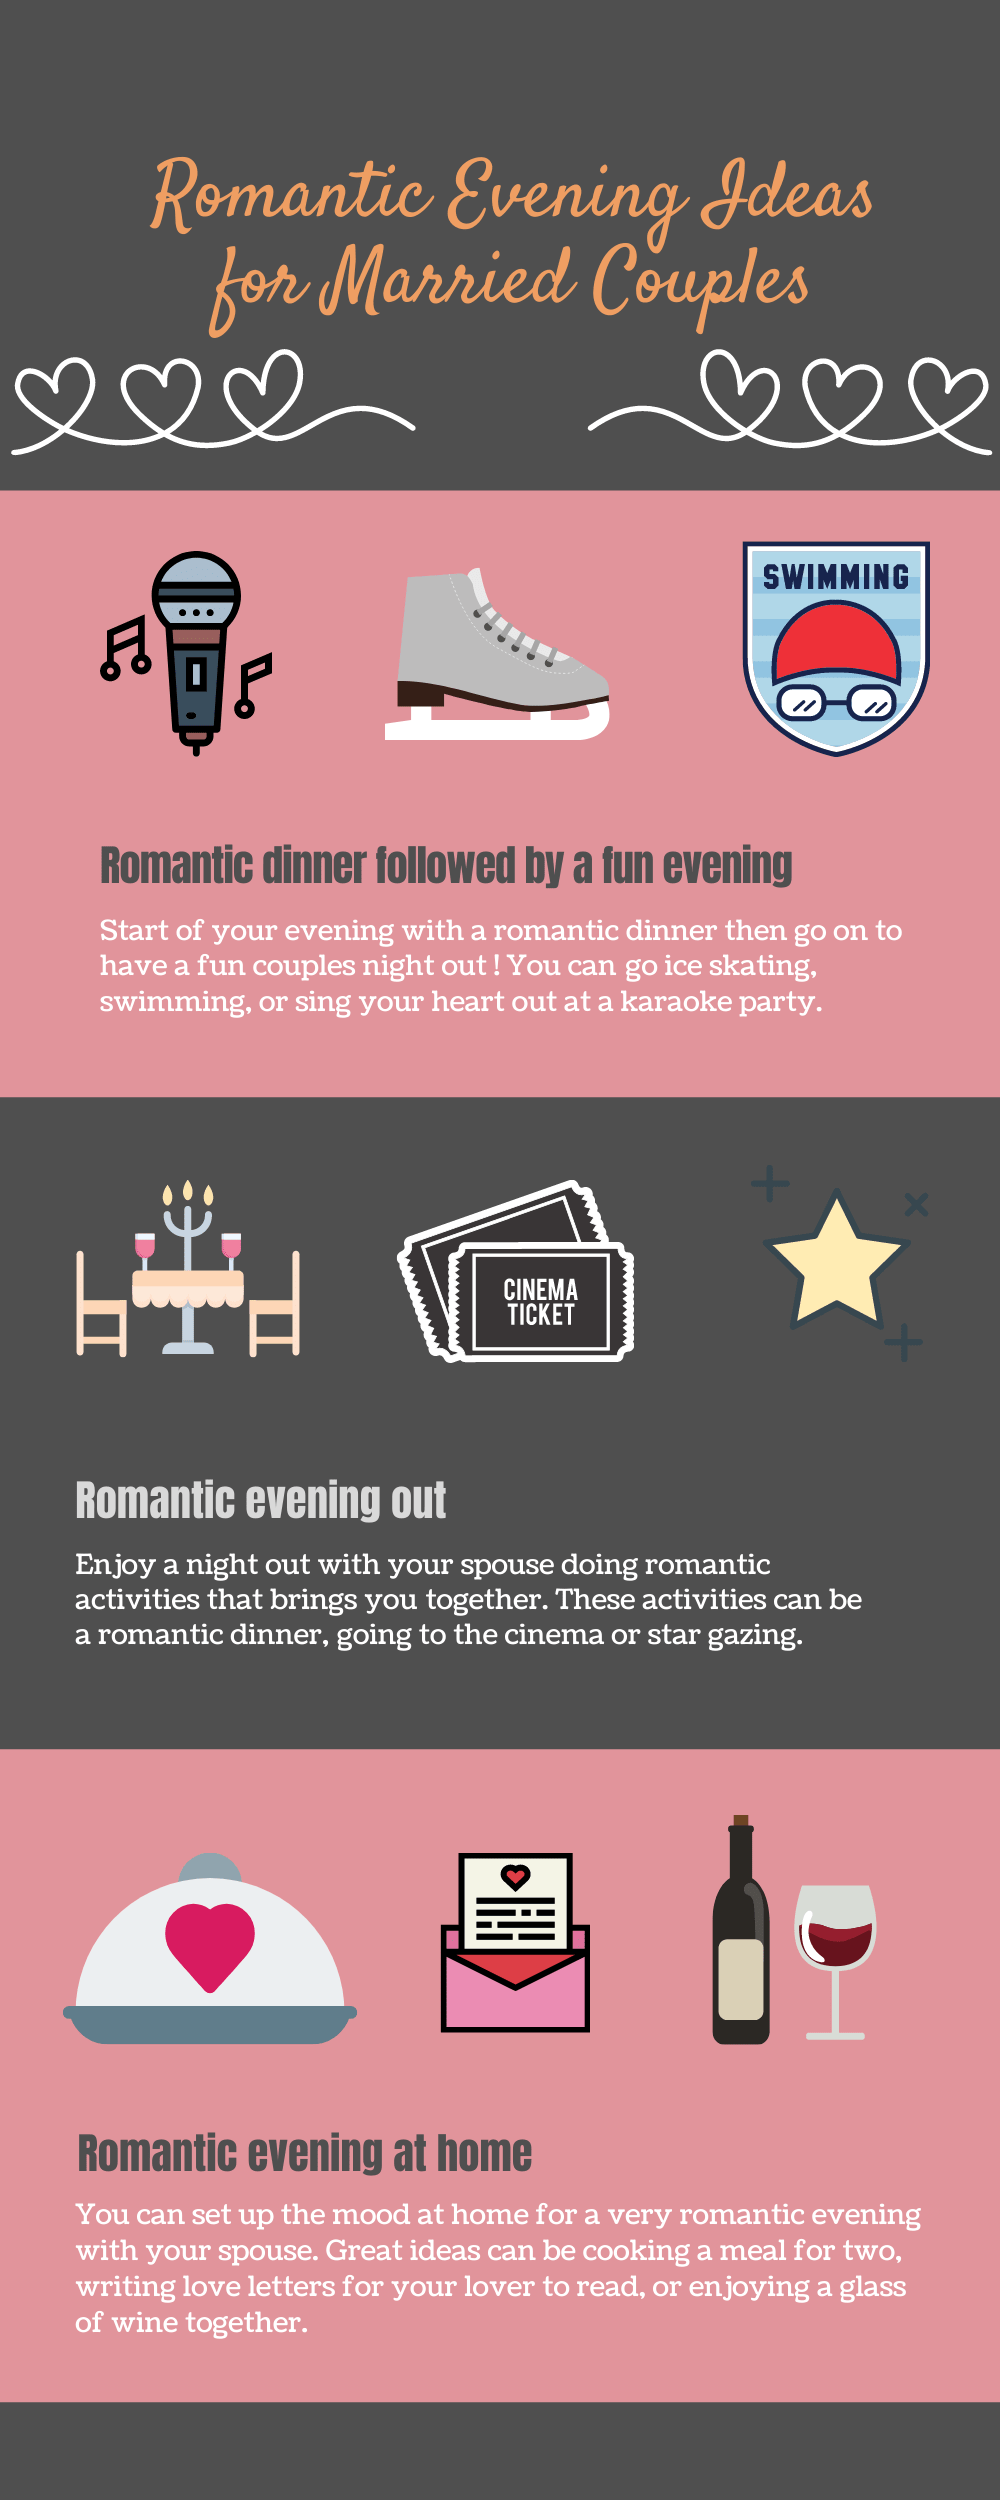 Infographic Romantic evening ideas for married couples